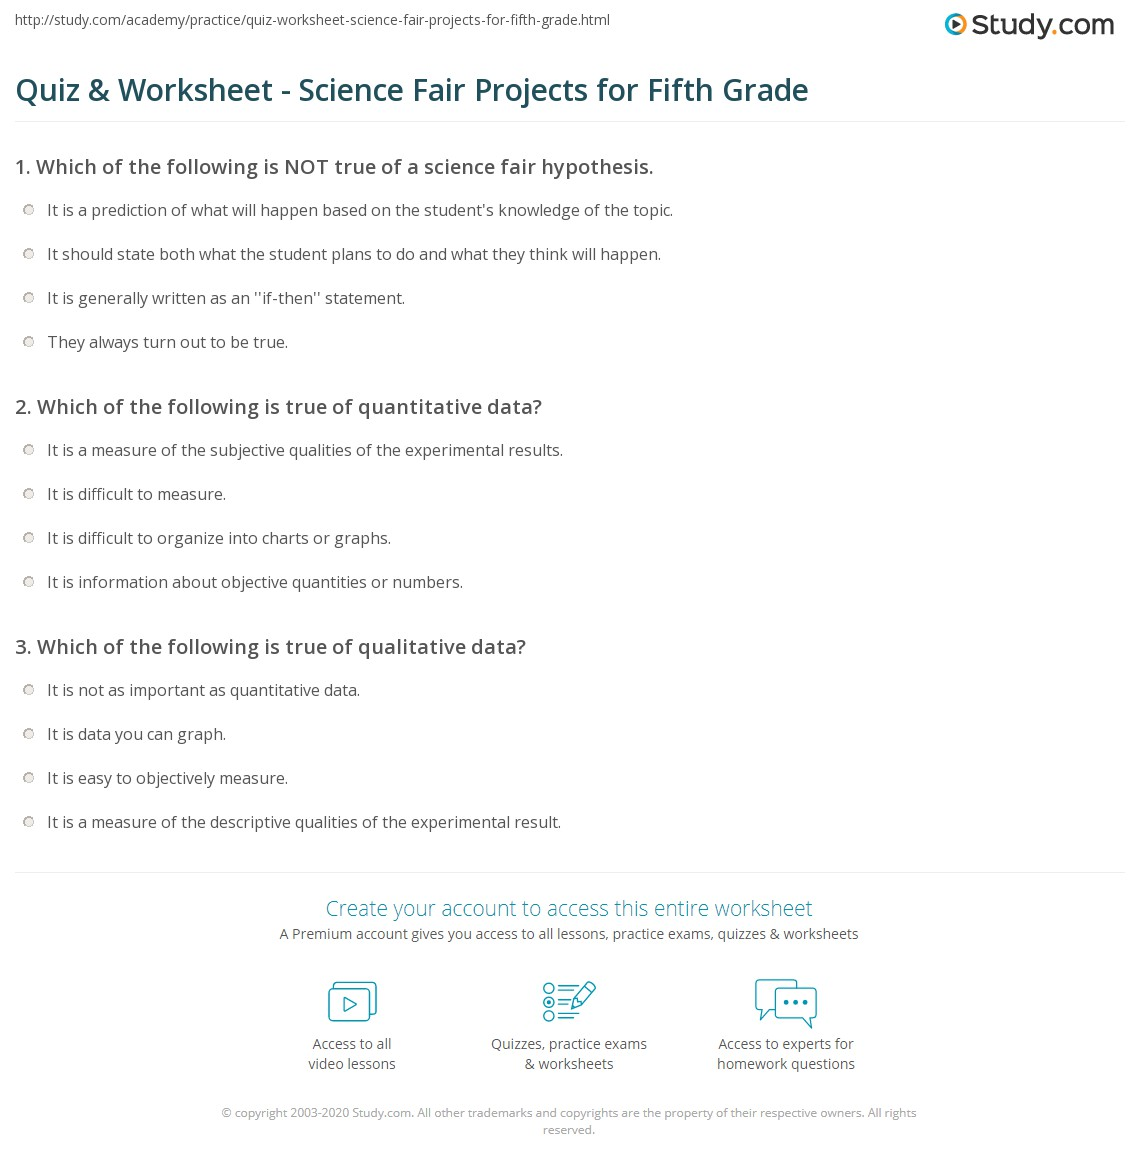 worksheet Fifth Grade Science Worksheets quiz worksheet science fair projects for fifth grade study com print 5th worksheet